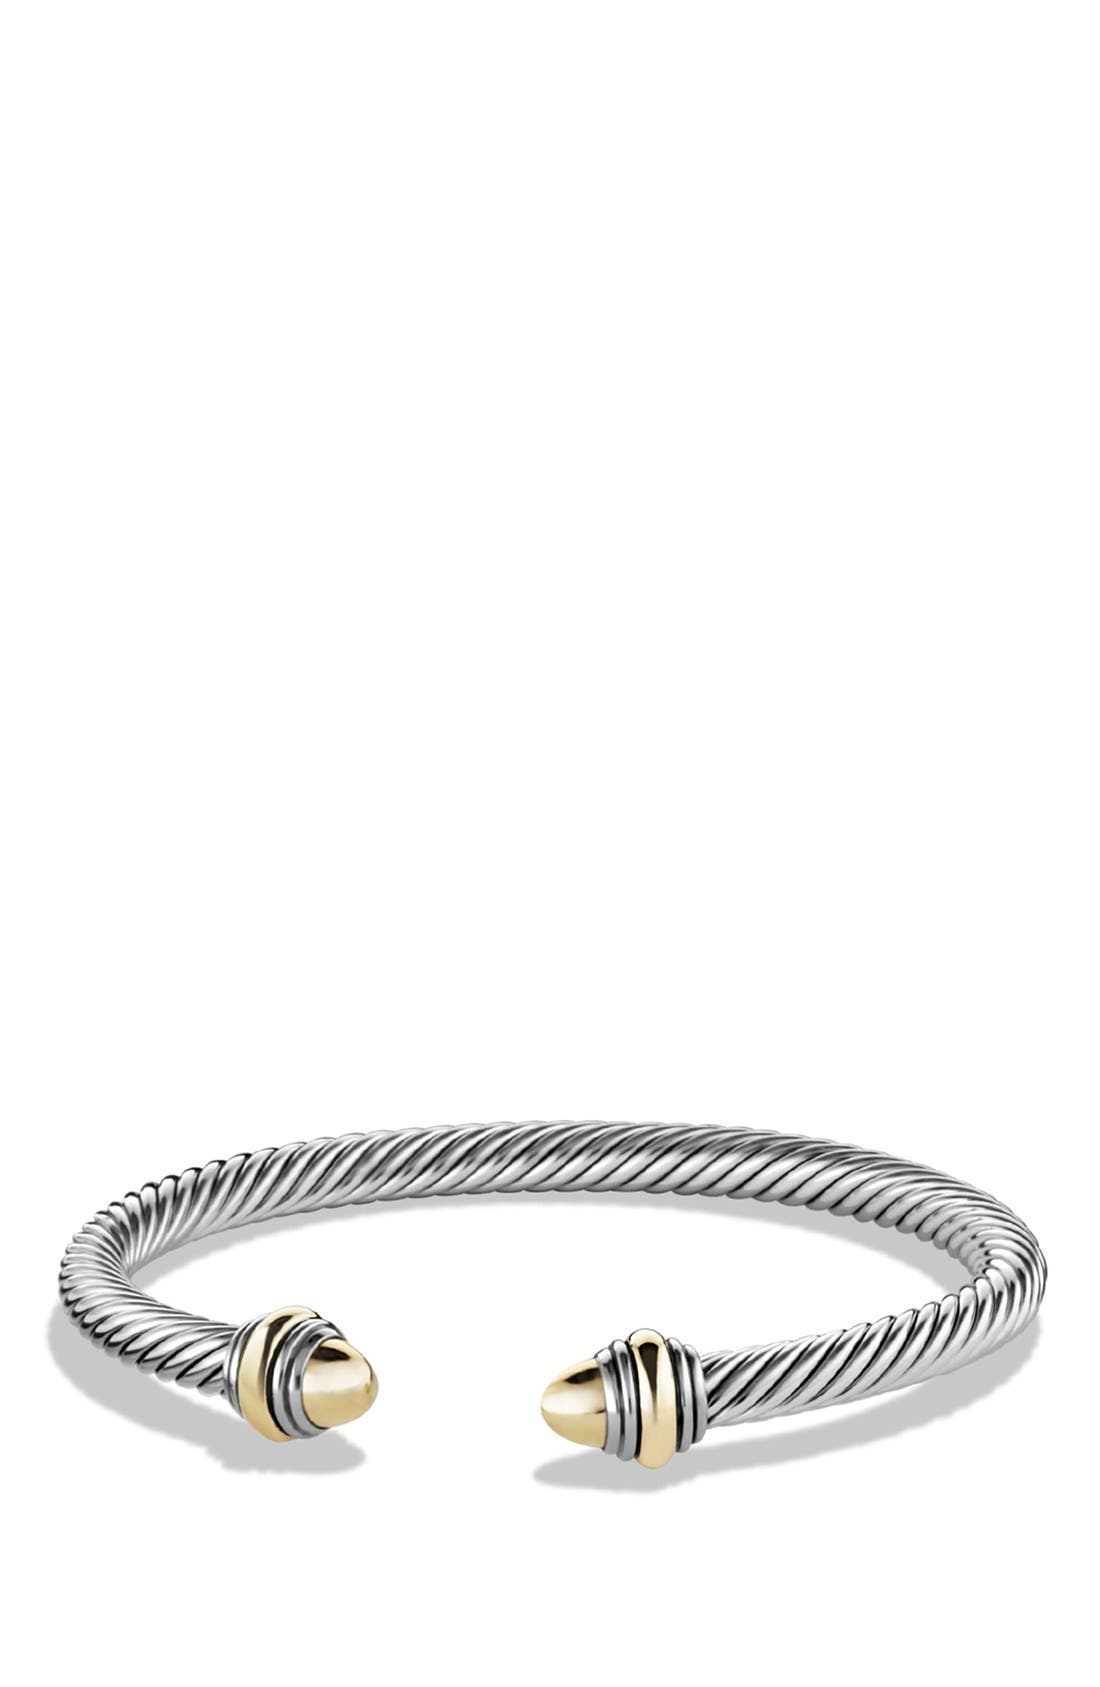 Cable Classics Bracelet with Gold, 5mm,                         Main,                         color, GOLD DOME